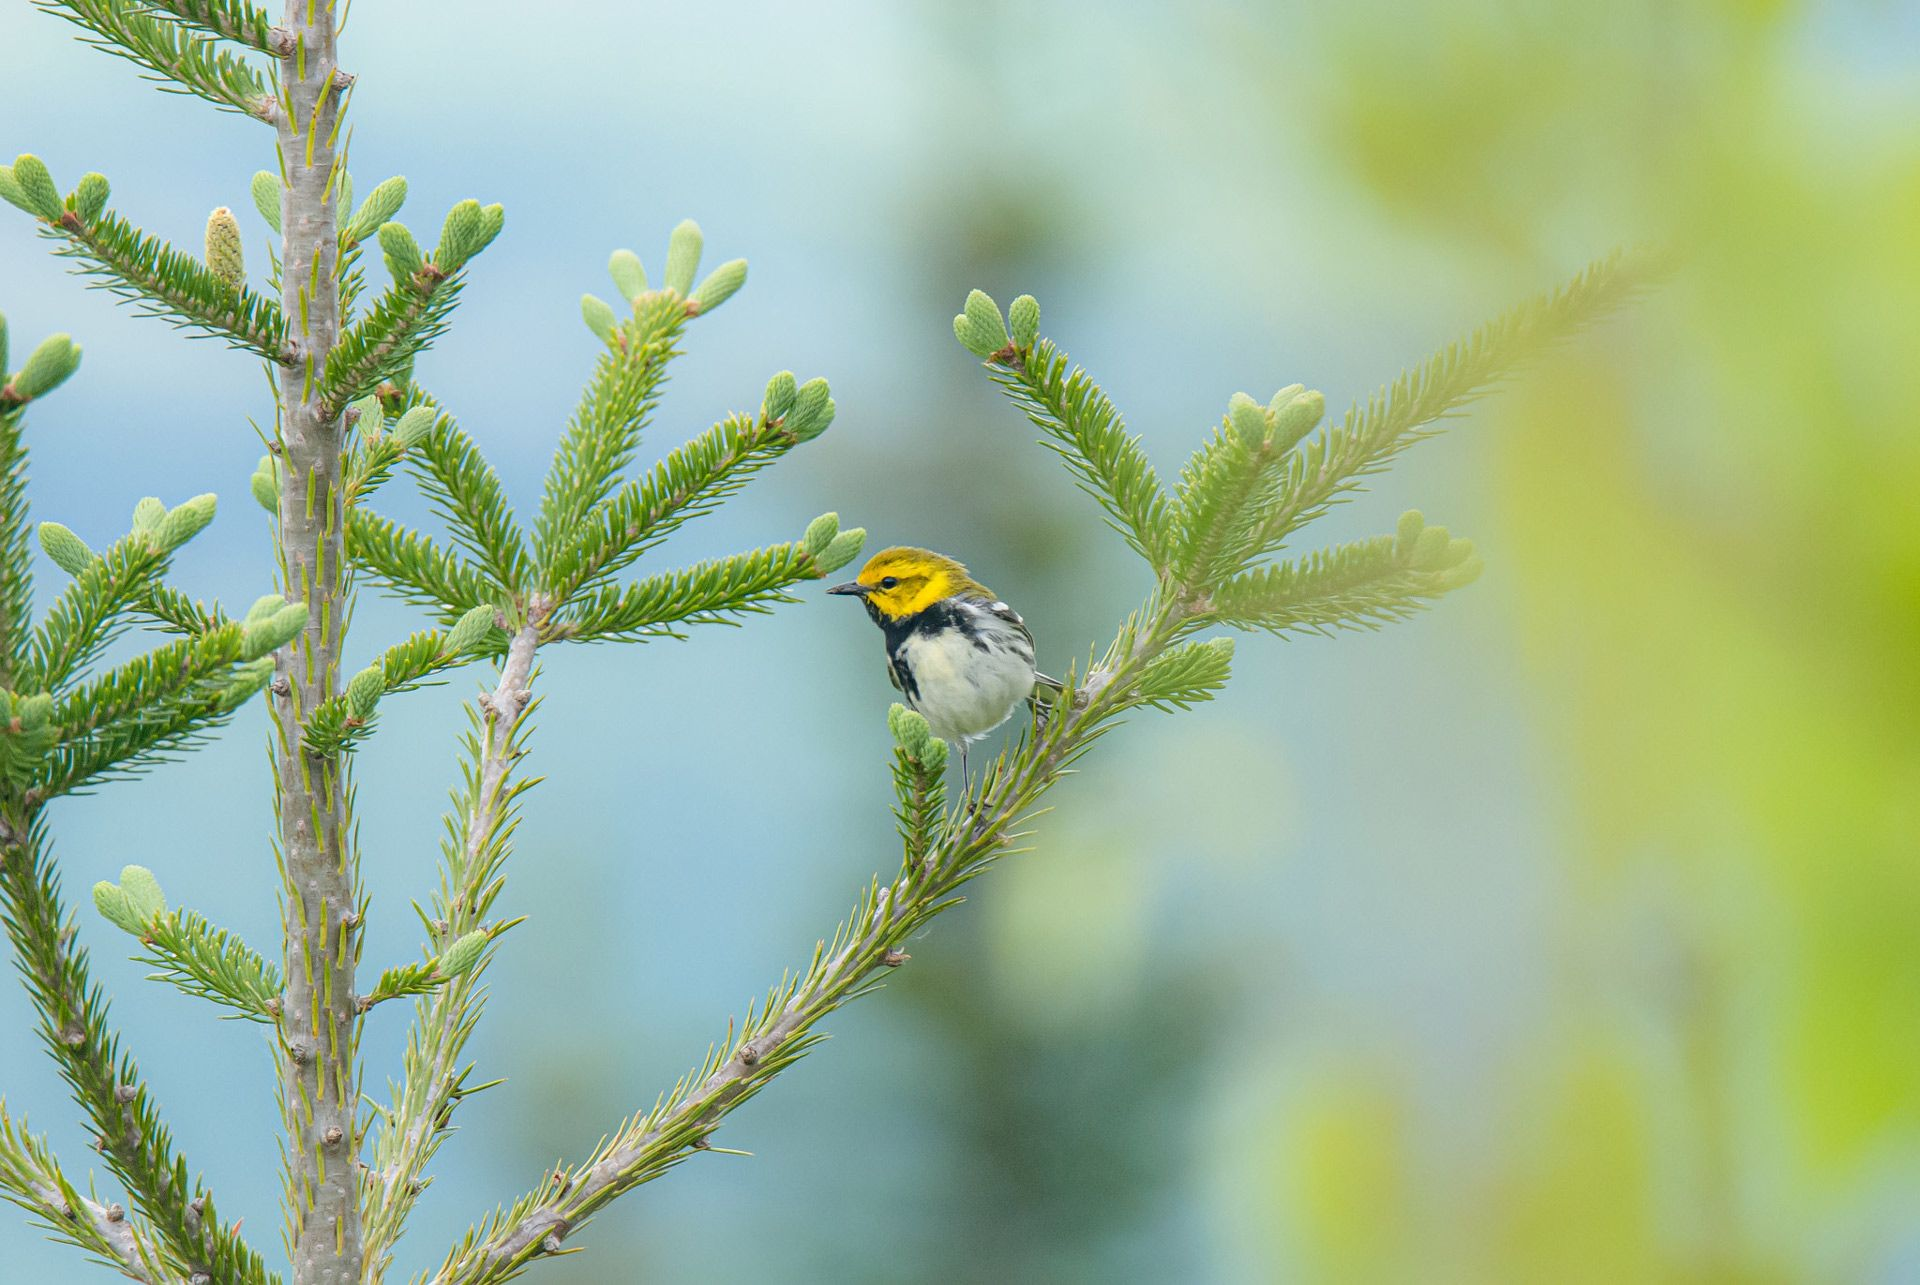 little orange and brown bird on tree branch in summer blue sky in background by Alexi Hobbs